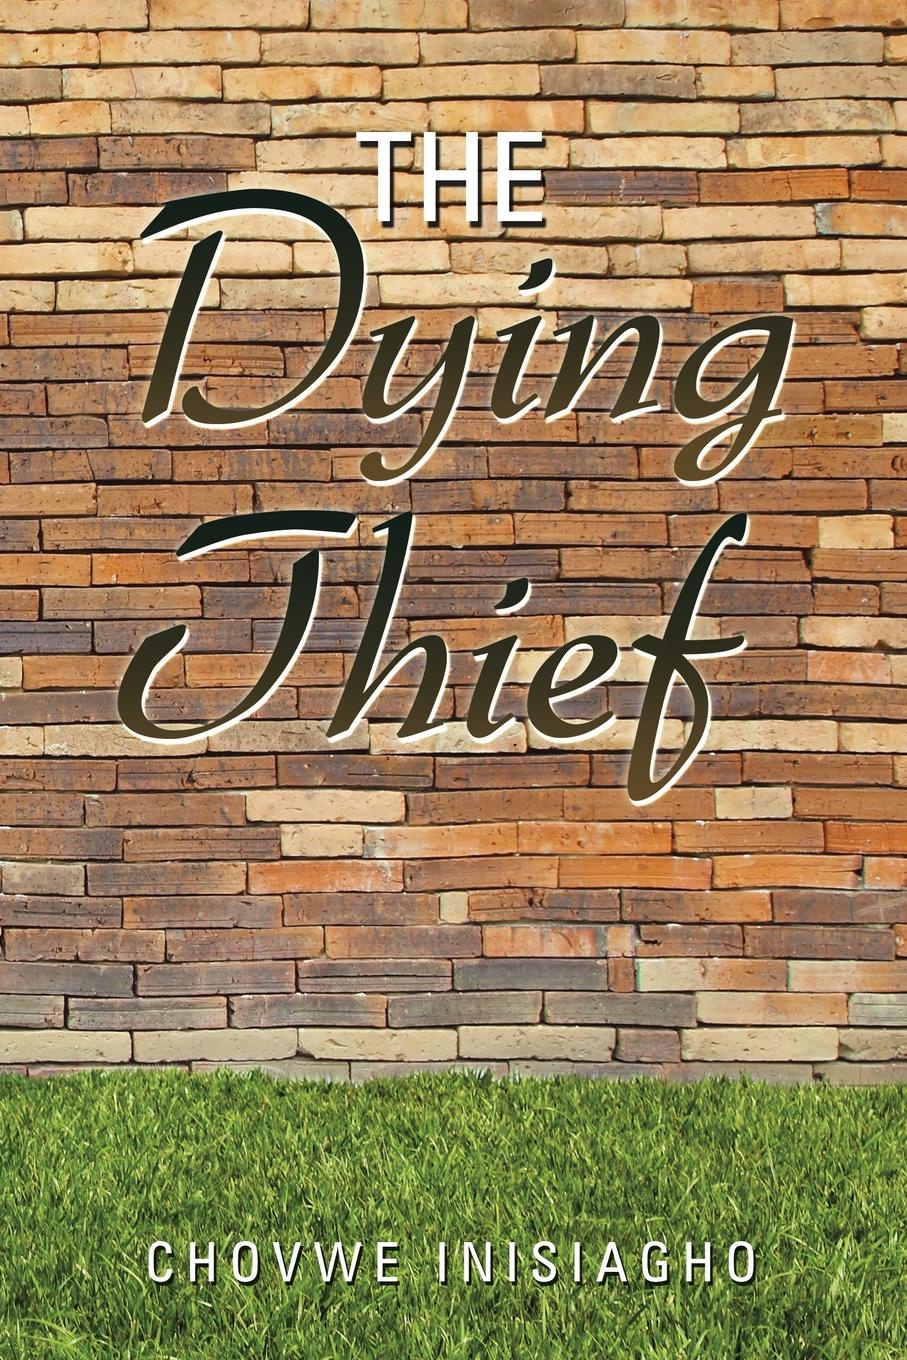 CHOVWE INISIAGHO The Dying Thief